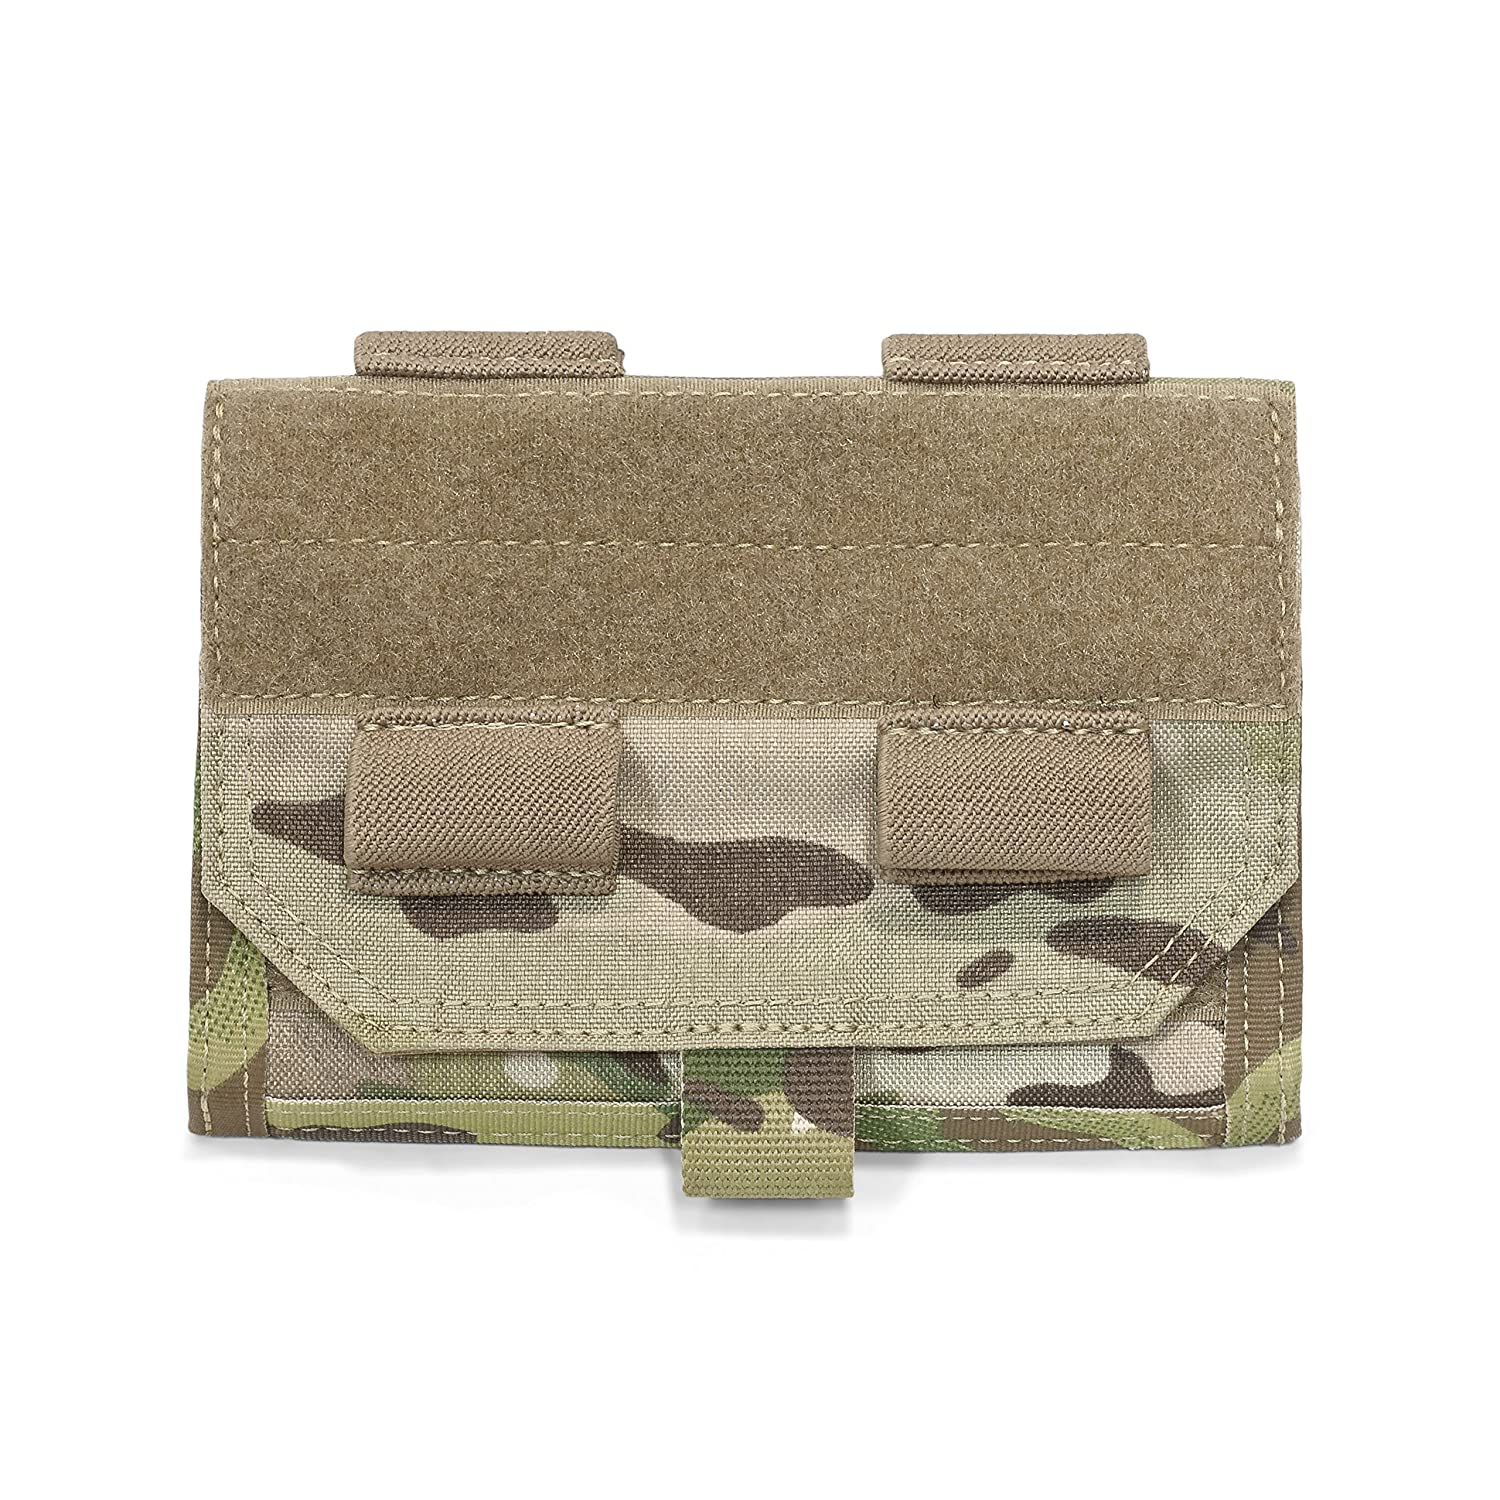 Warrior Assault Systems Front Opening Admin pouch with Fold Out Sleeves, MultiCam W-EO-FOA-MC